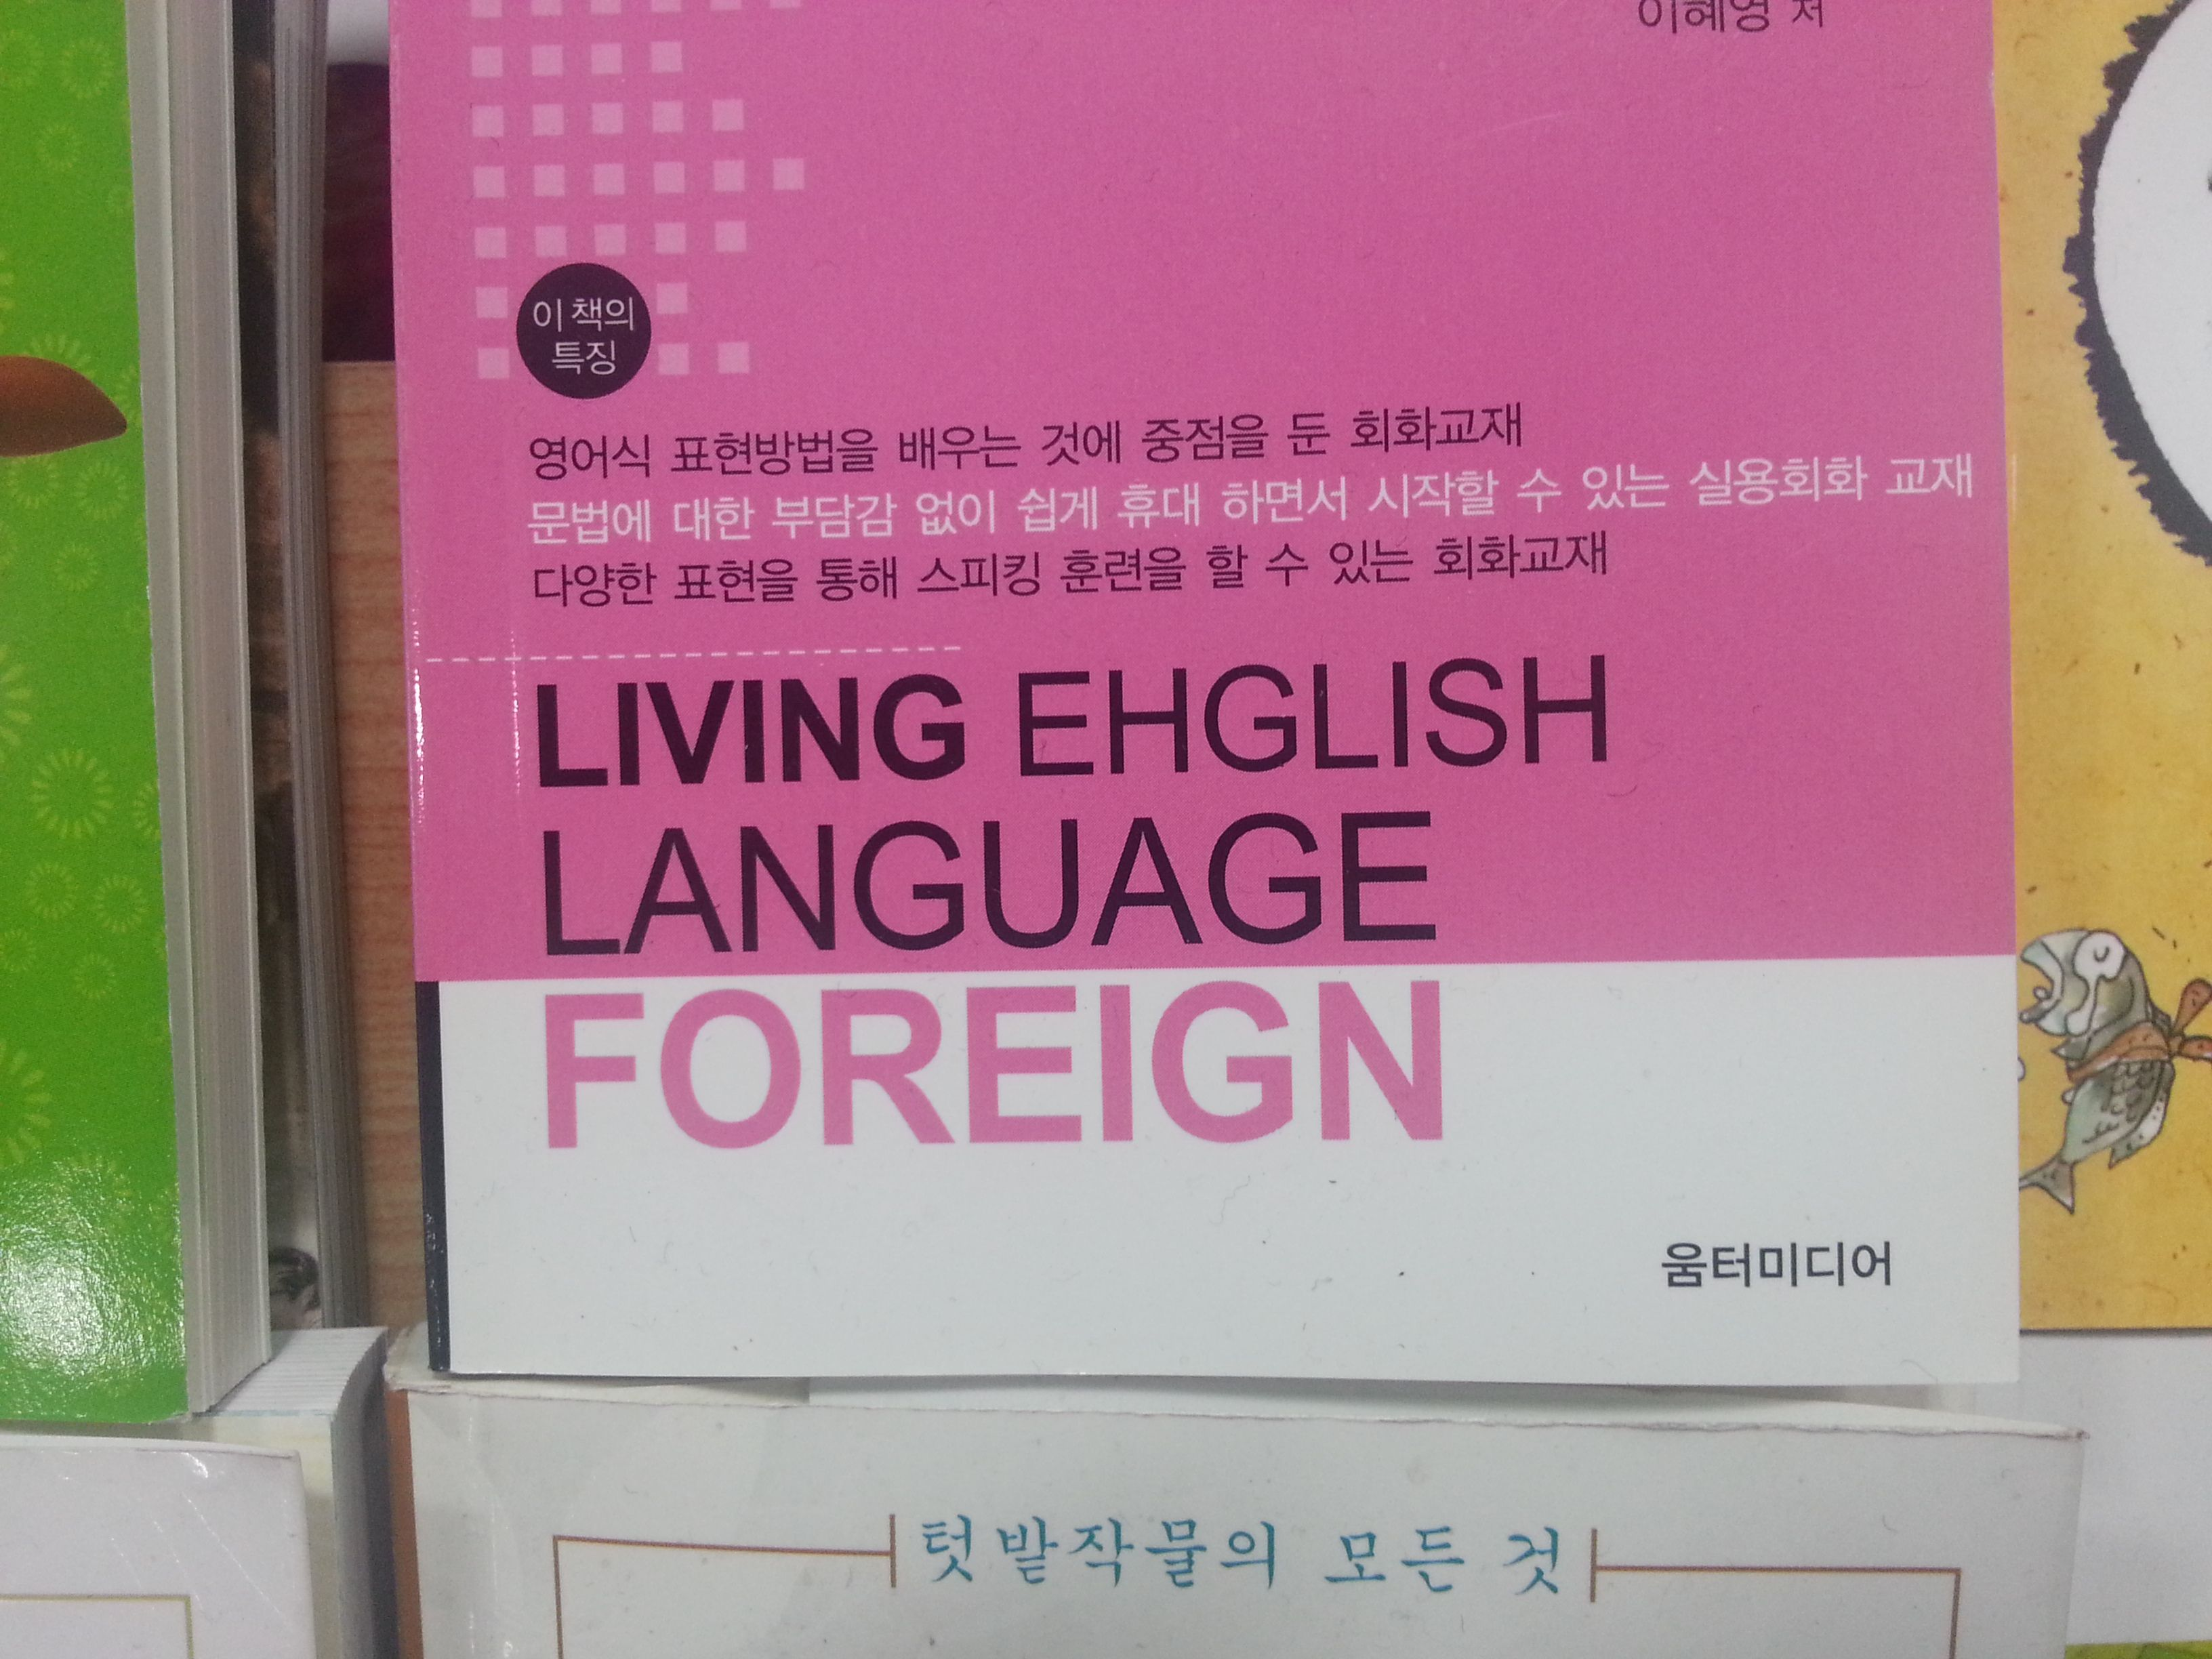 Found at a book kiosk in the Daejeon Express Bus Terminal